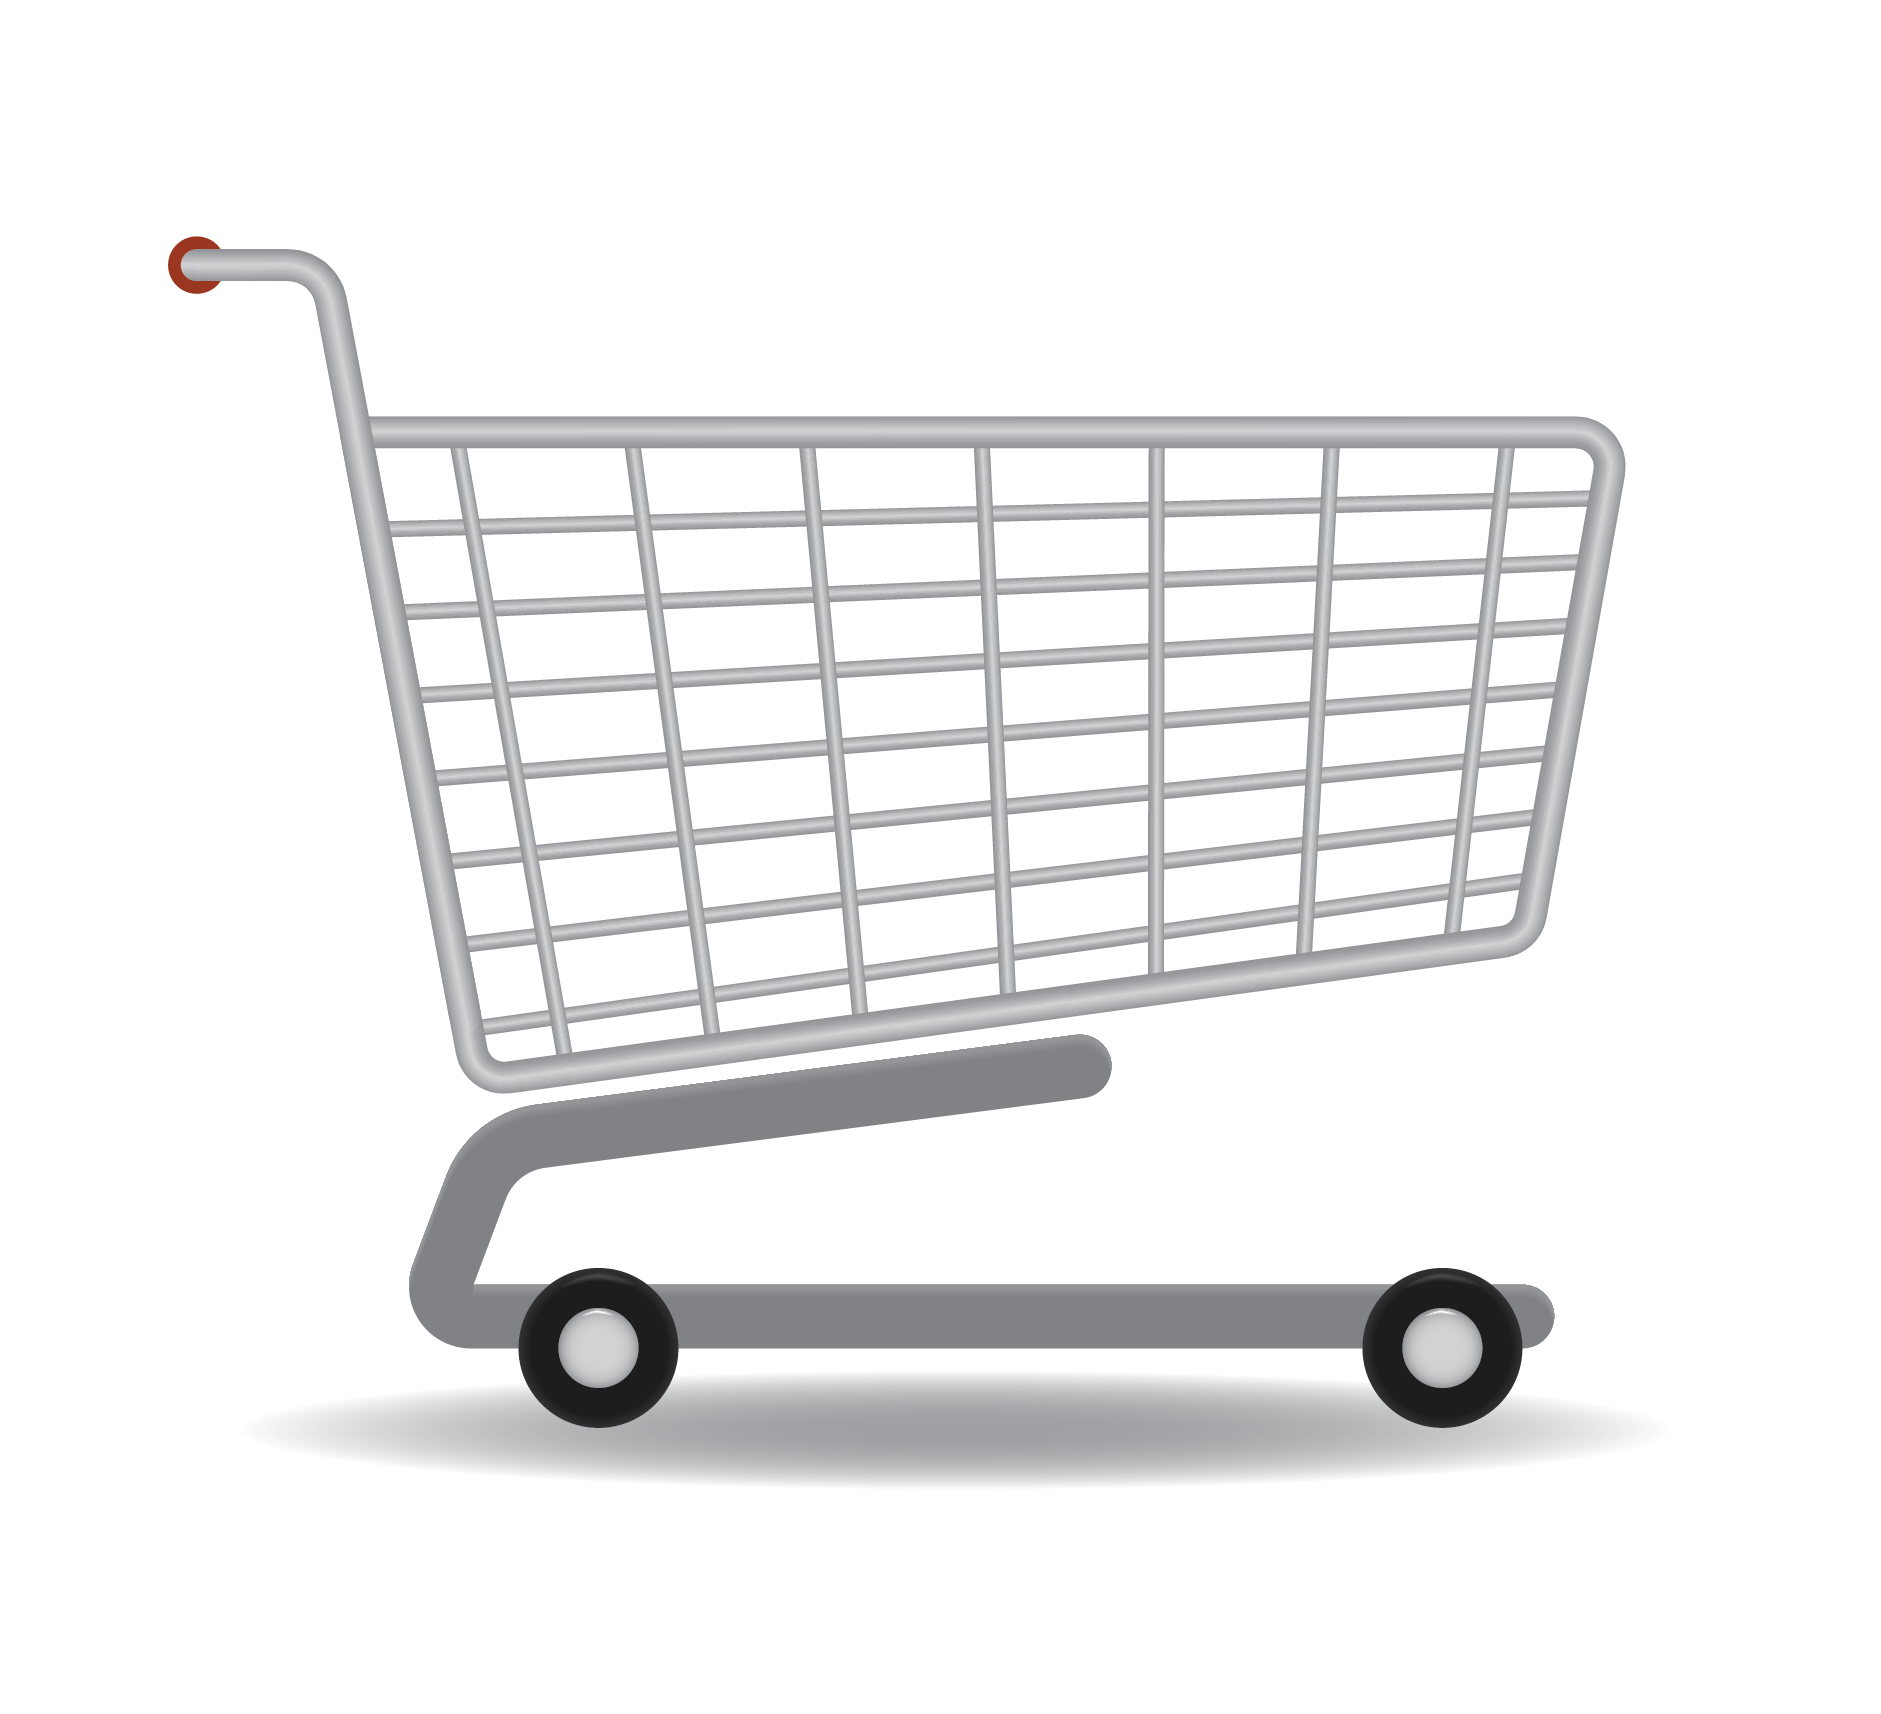 Shopping cart image png. Purepng free transparent cc